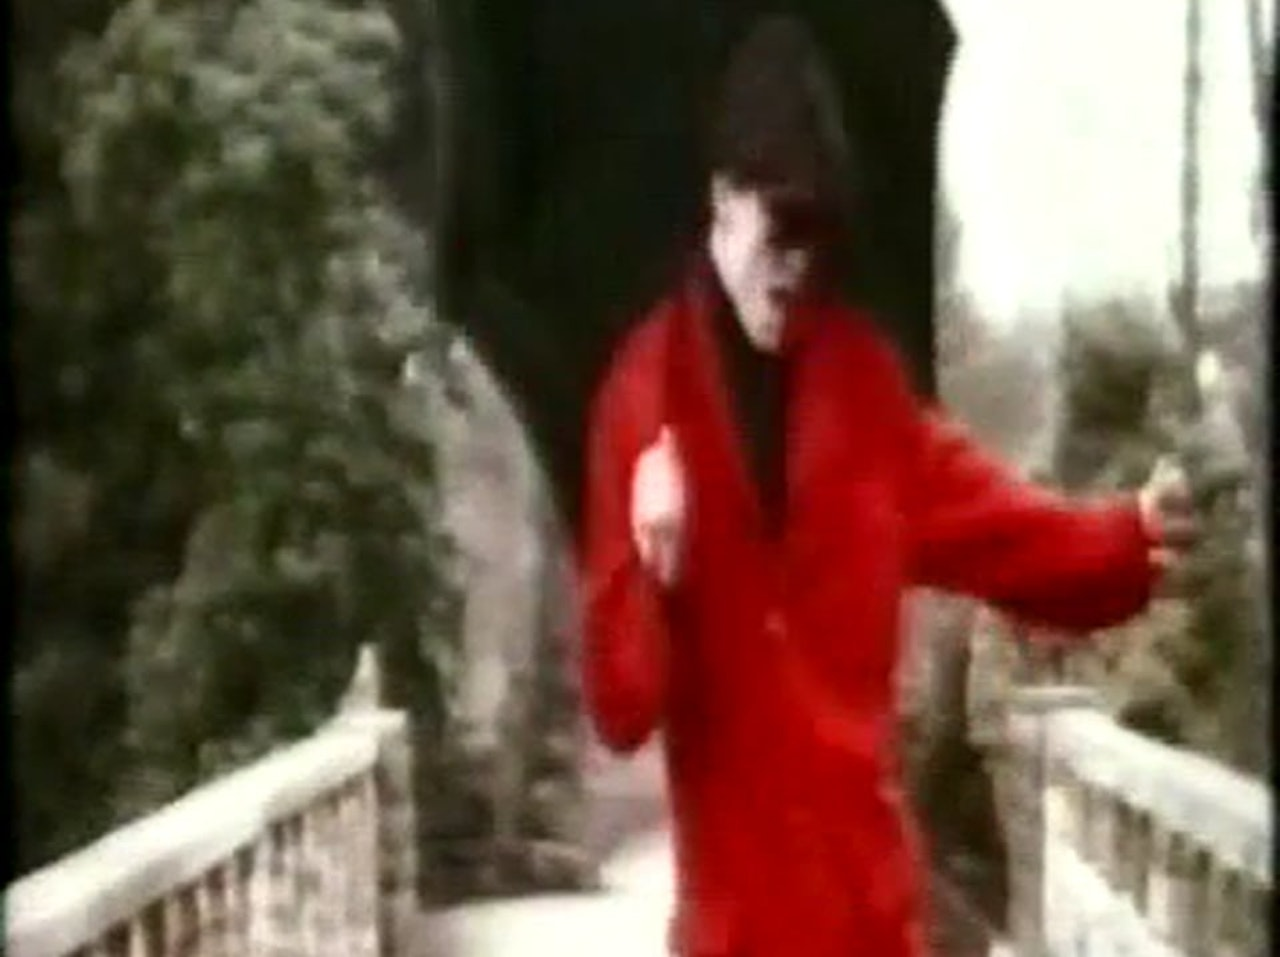 BLOWMONKEYS - Out With Her